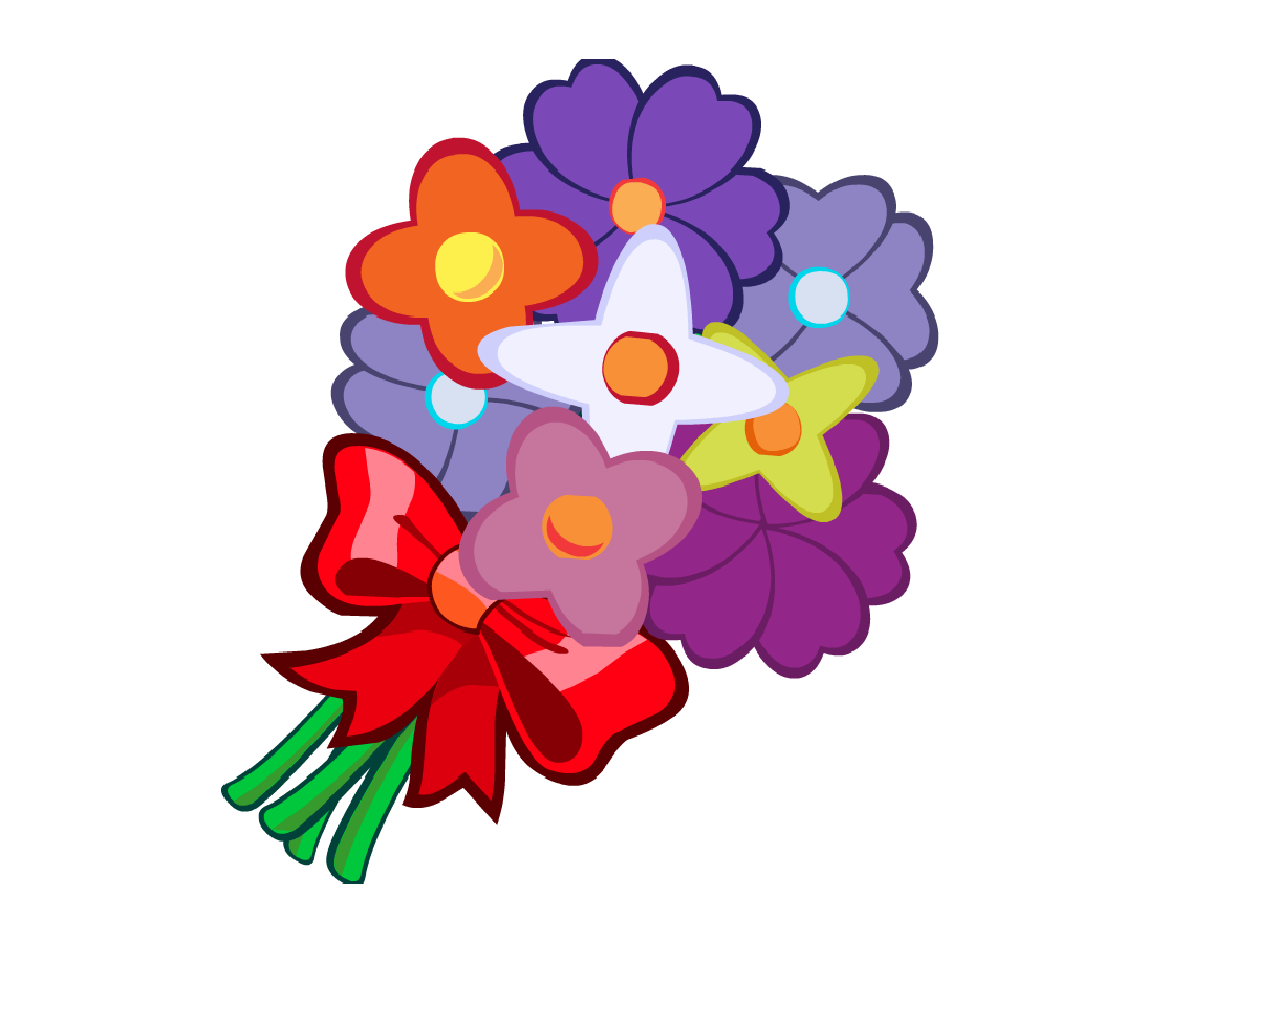 Flower bouquet wild ones wiki fandom powered by wikia flower bouquet izmirmasajfo Image collections